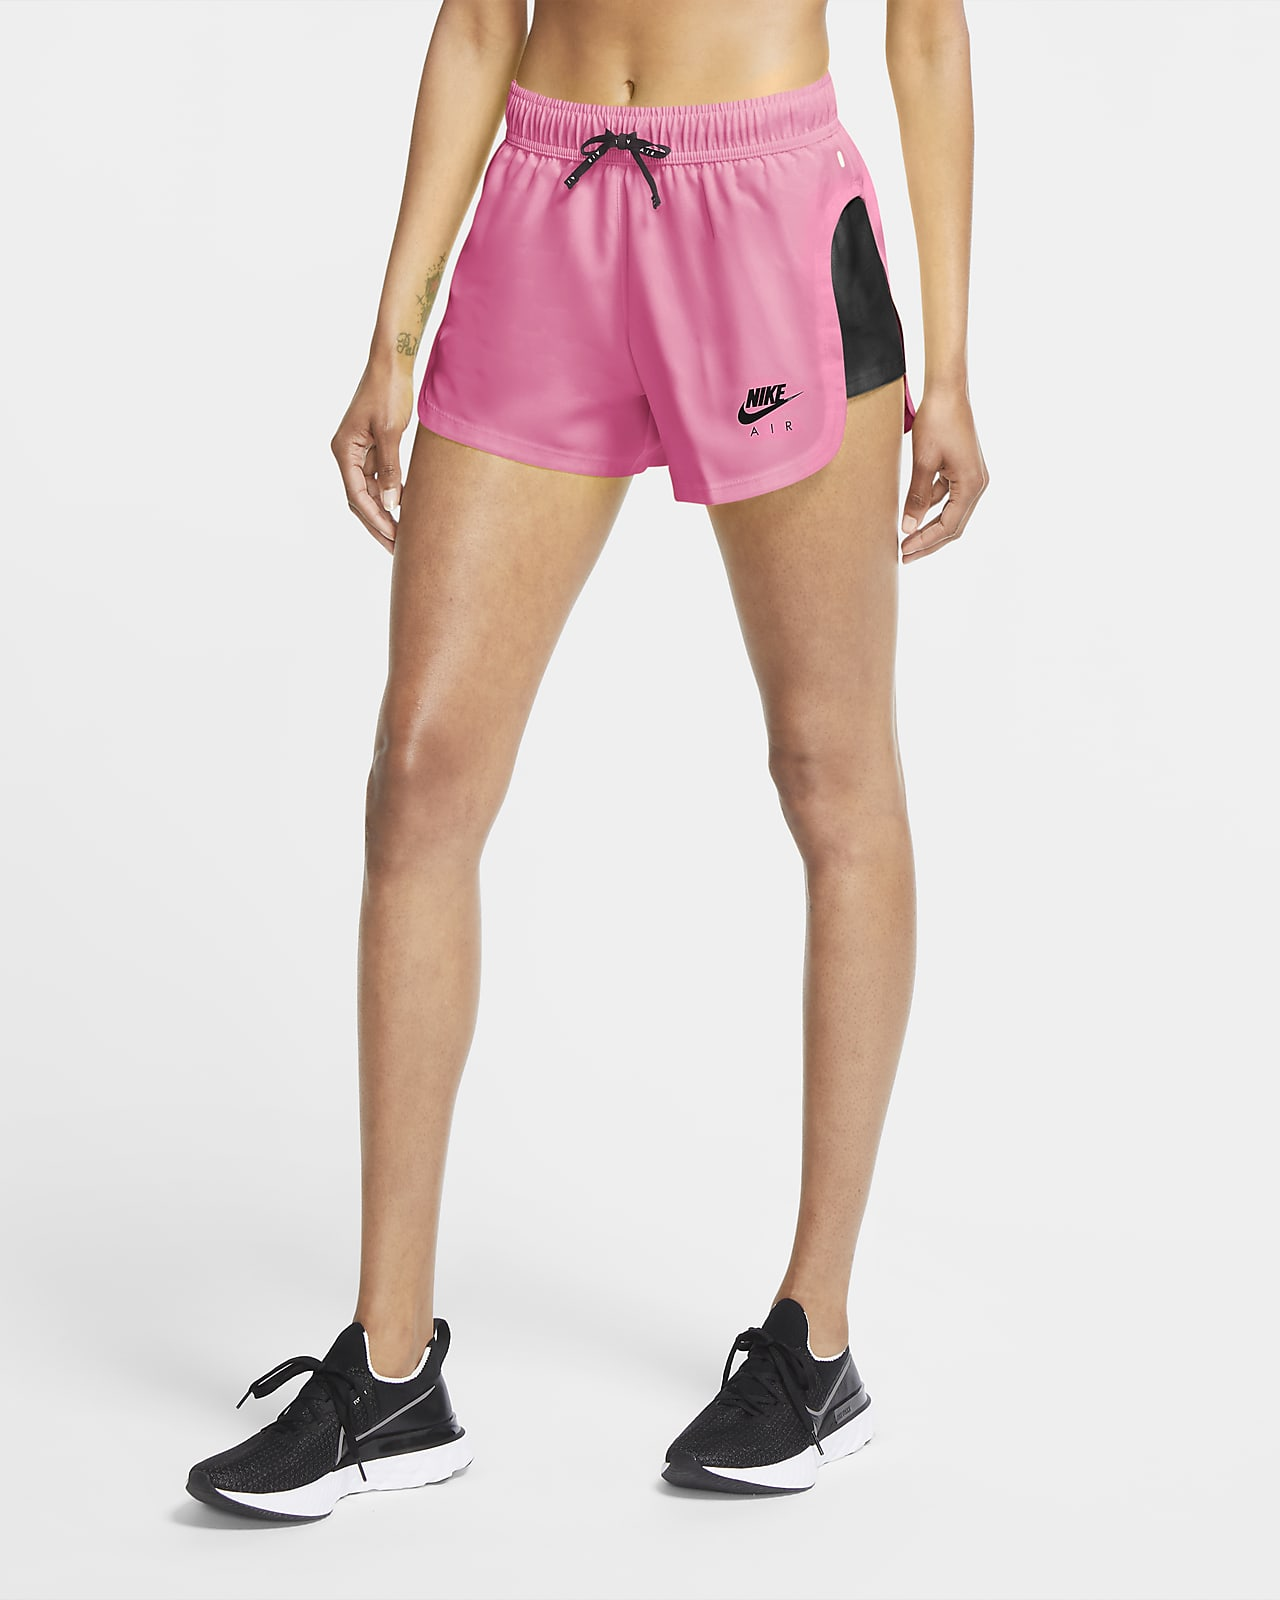 Nike Air Women's Running Shorts